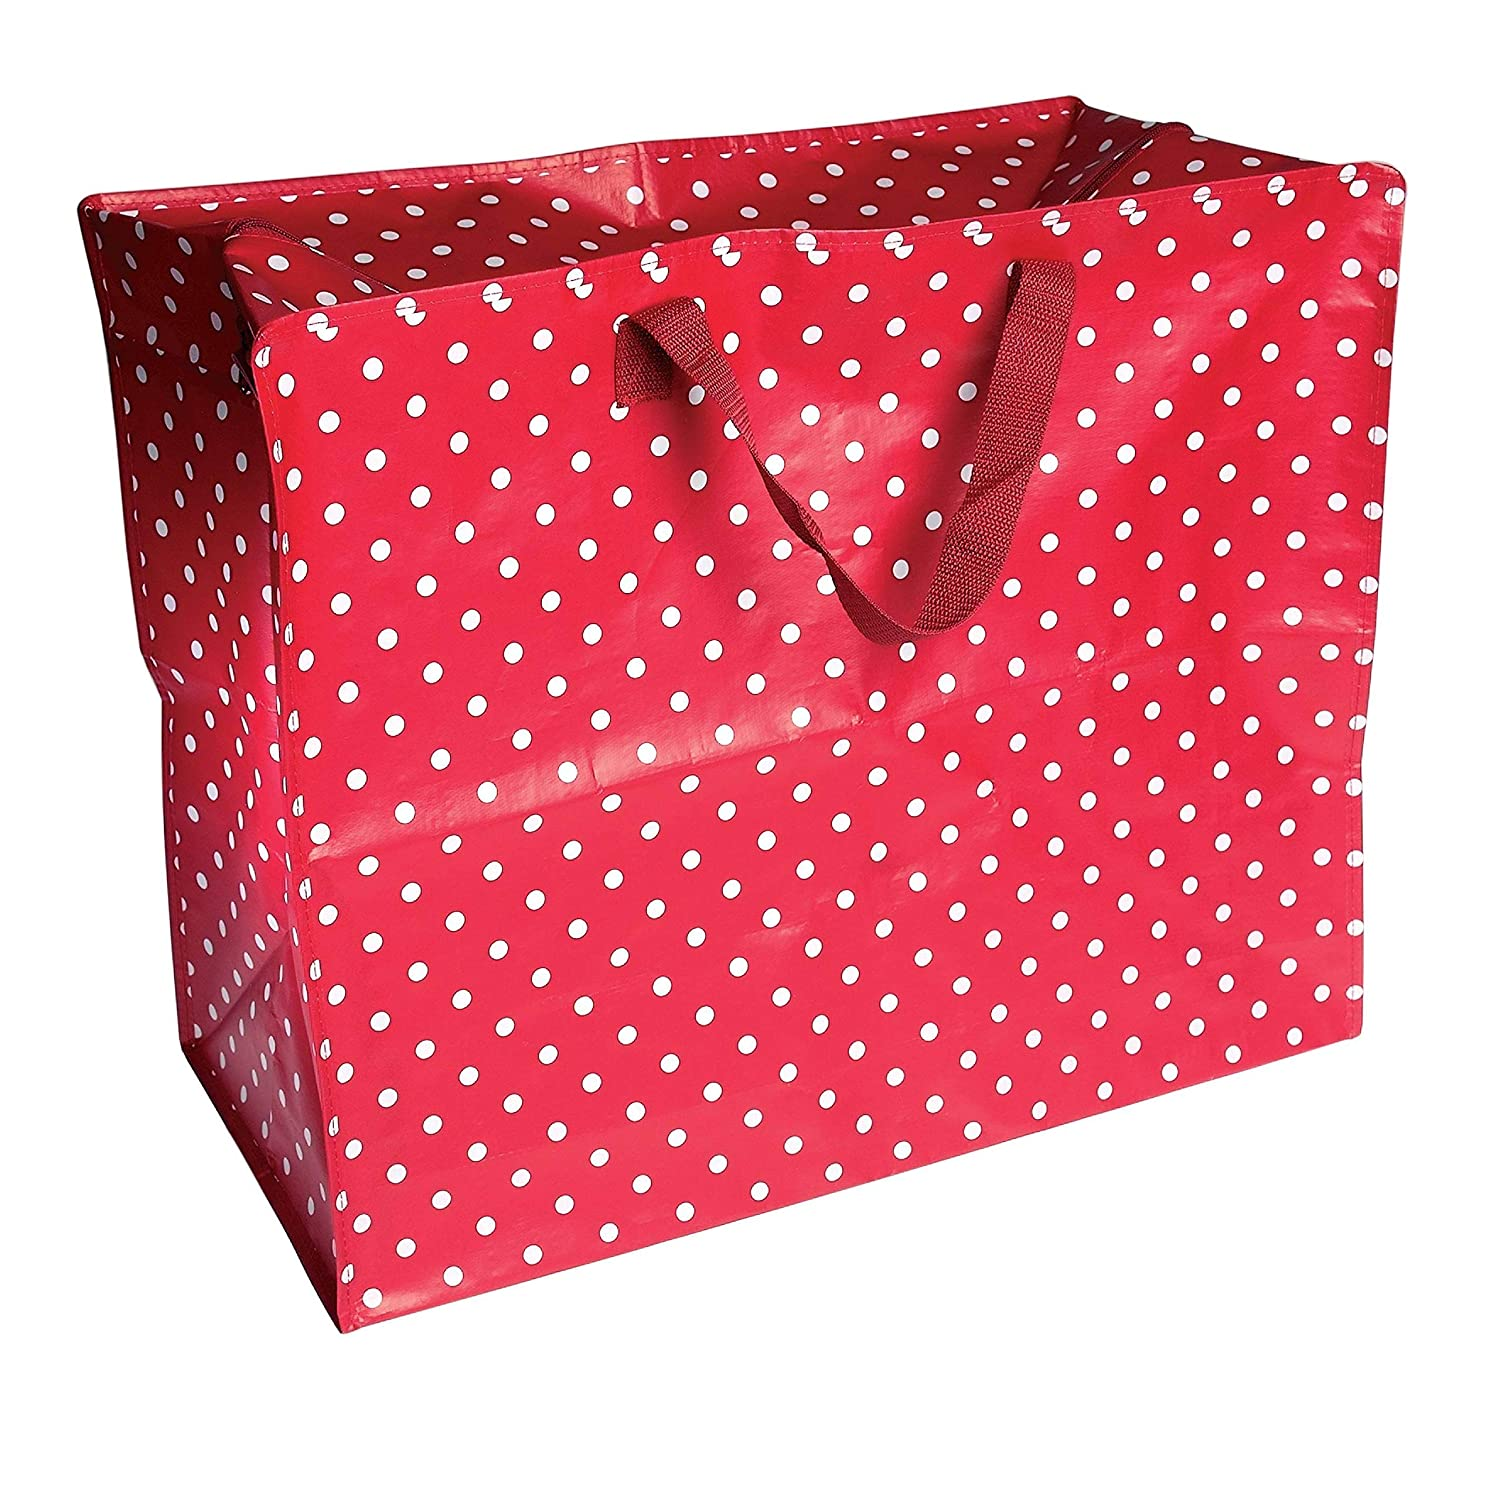 dotcomgiftshop Large Red Storage Bag with Zip - Strong and Durable 55 x 48 x 28cm 70l - Polka Dot Rex International Ltd 85099B